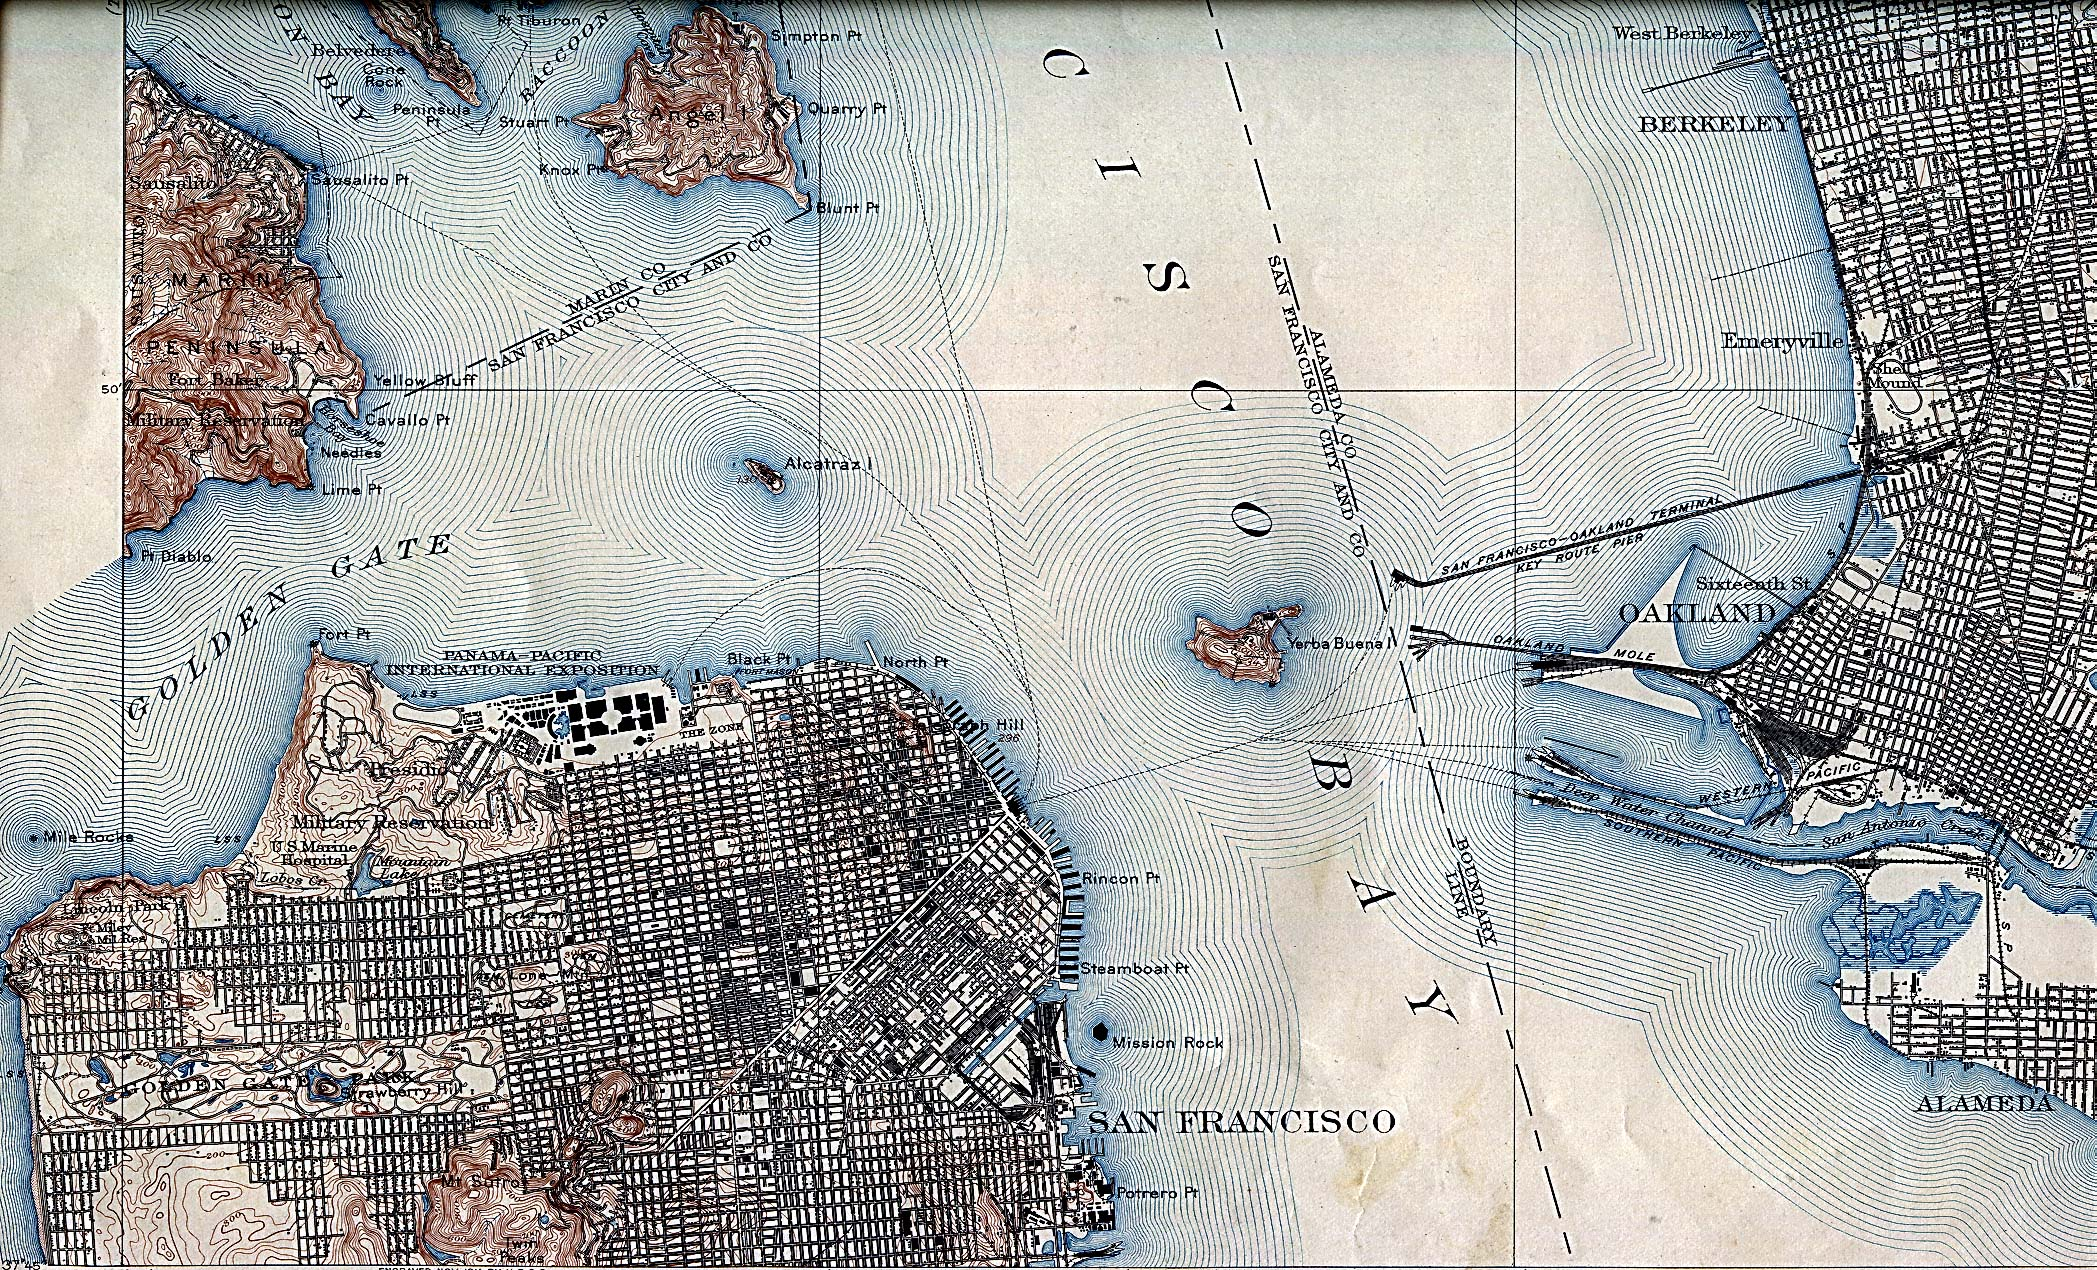 Historical Maps of U.S Cities. San Francisco, California 1915 U.S. Geological Survey (1,403K)